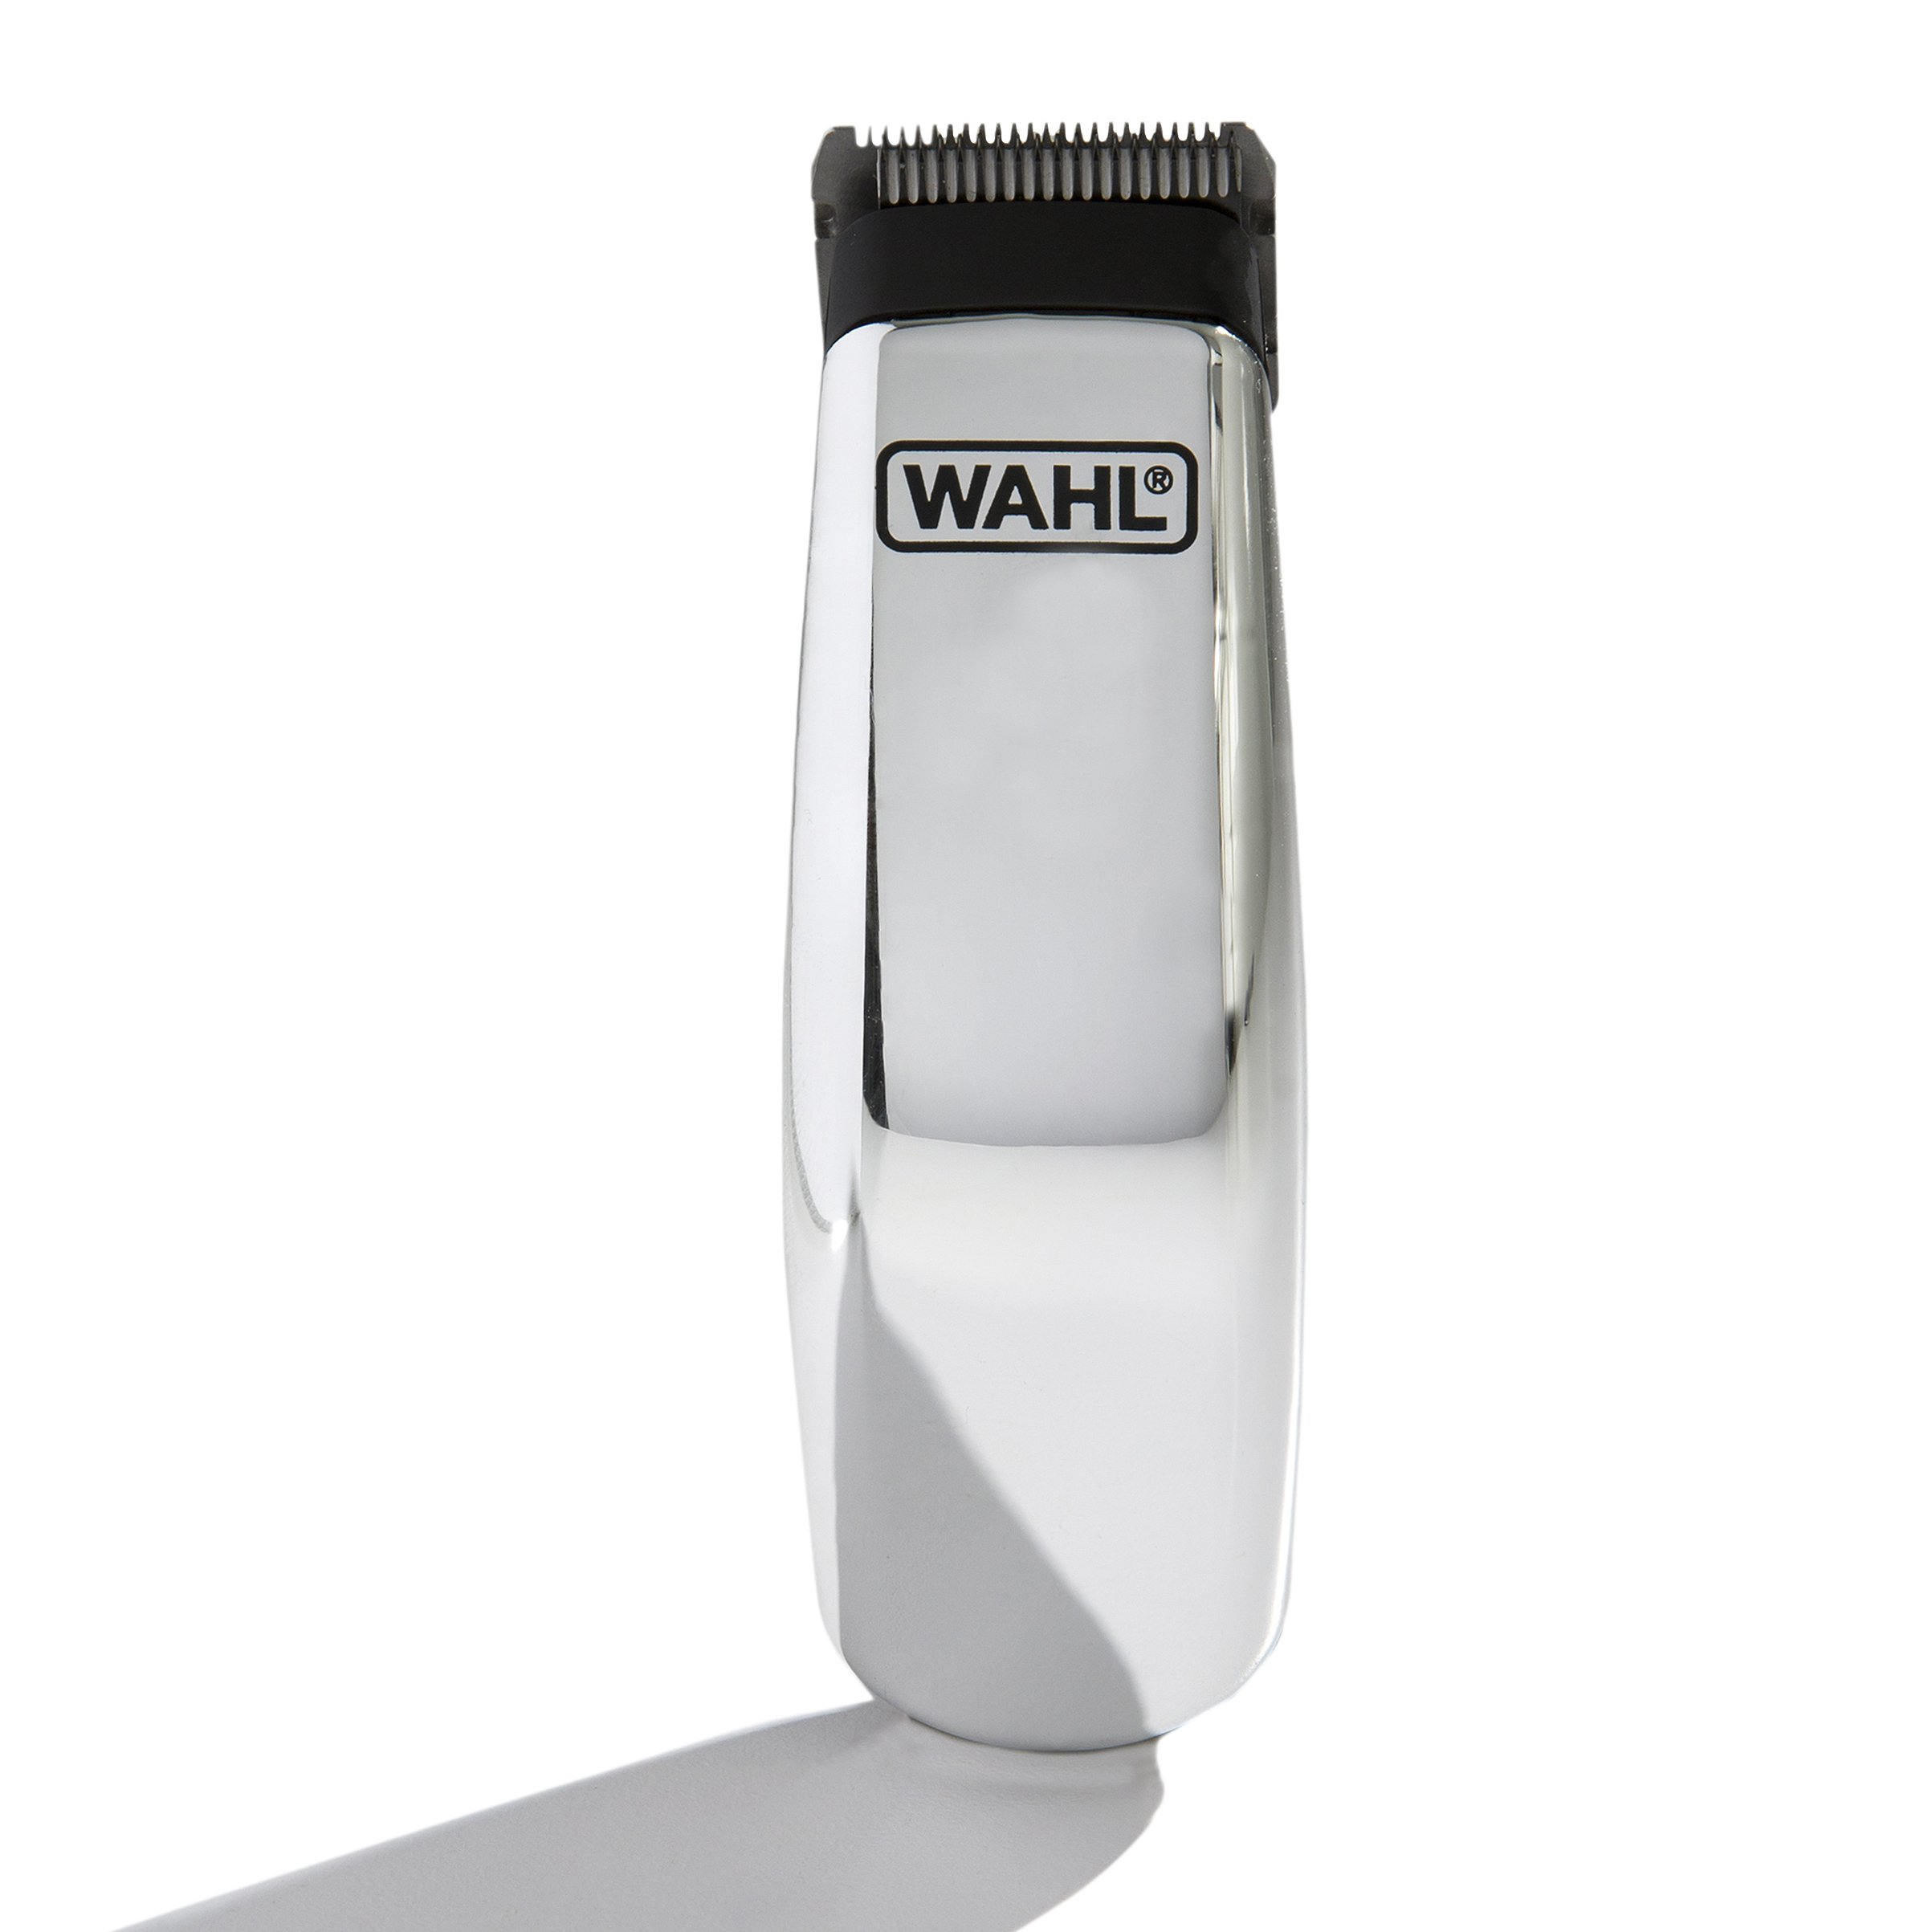 Wahl Professional Half Pint Travel Trimmer #8064-900 - Power and Precision that Fits in Your Palm - Battery Operated - Includes Case